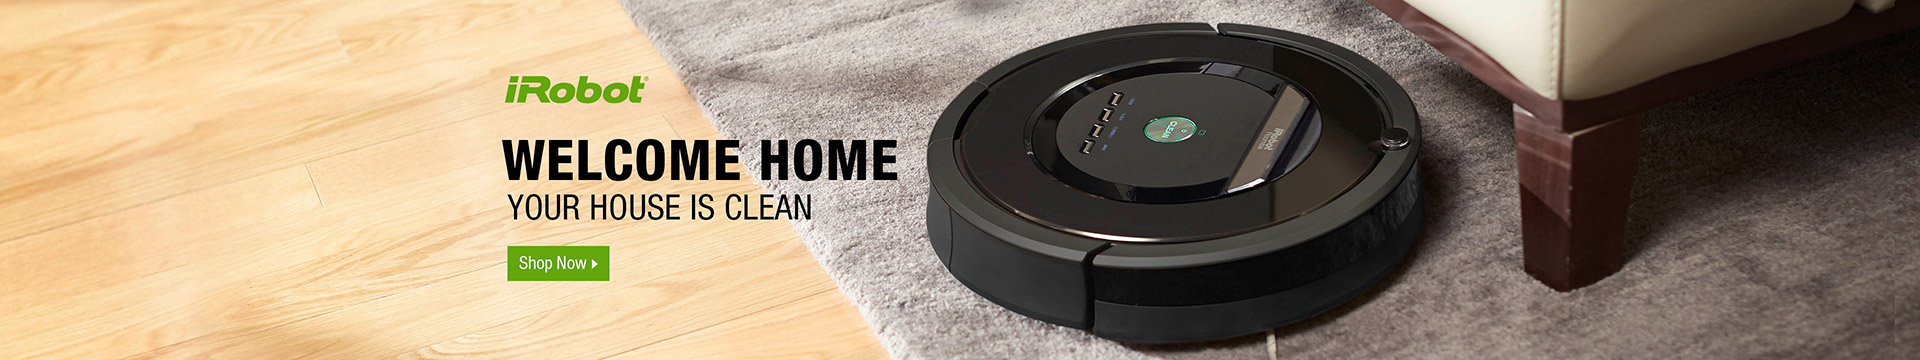 iRobot Welcome Home